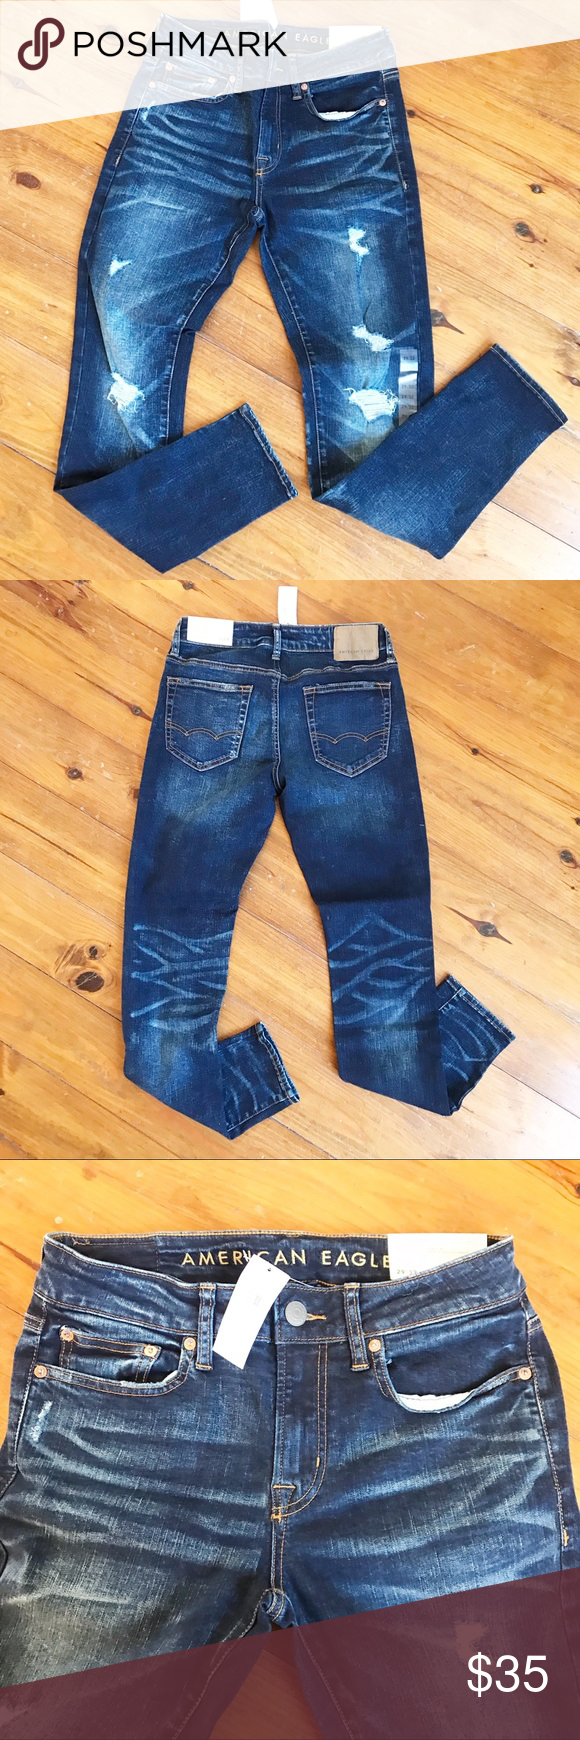 American Eagle Ripped Distressed Jeans Mens 29 Brand new with tags American Eagl...